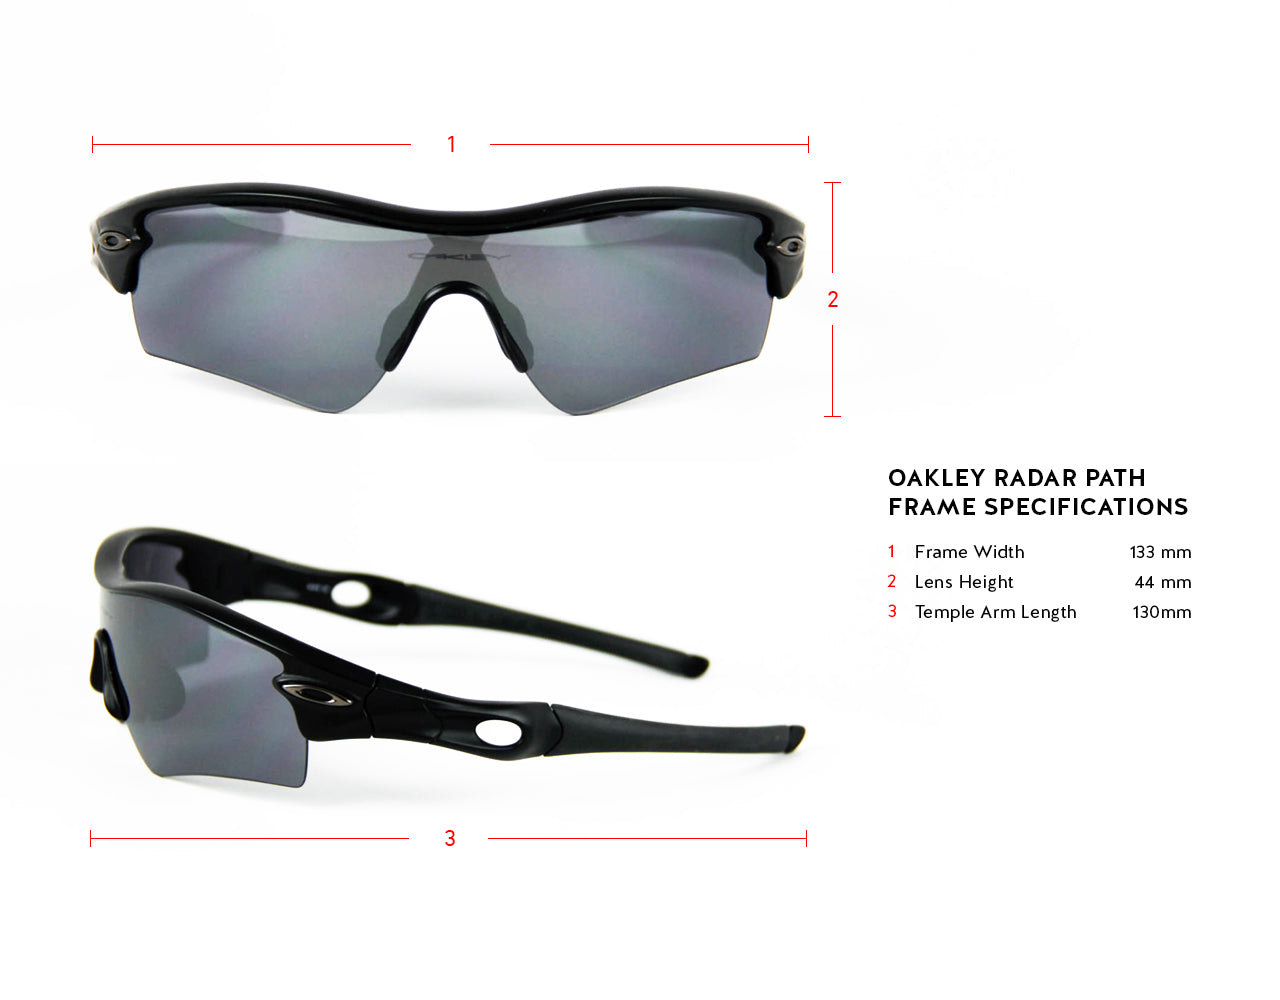 Oakley Radar Path Frame Specifications